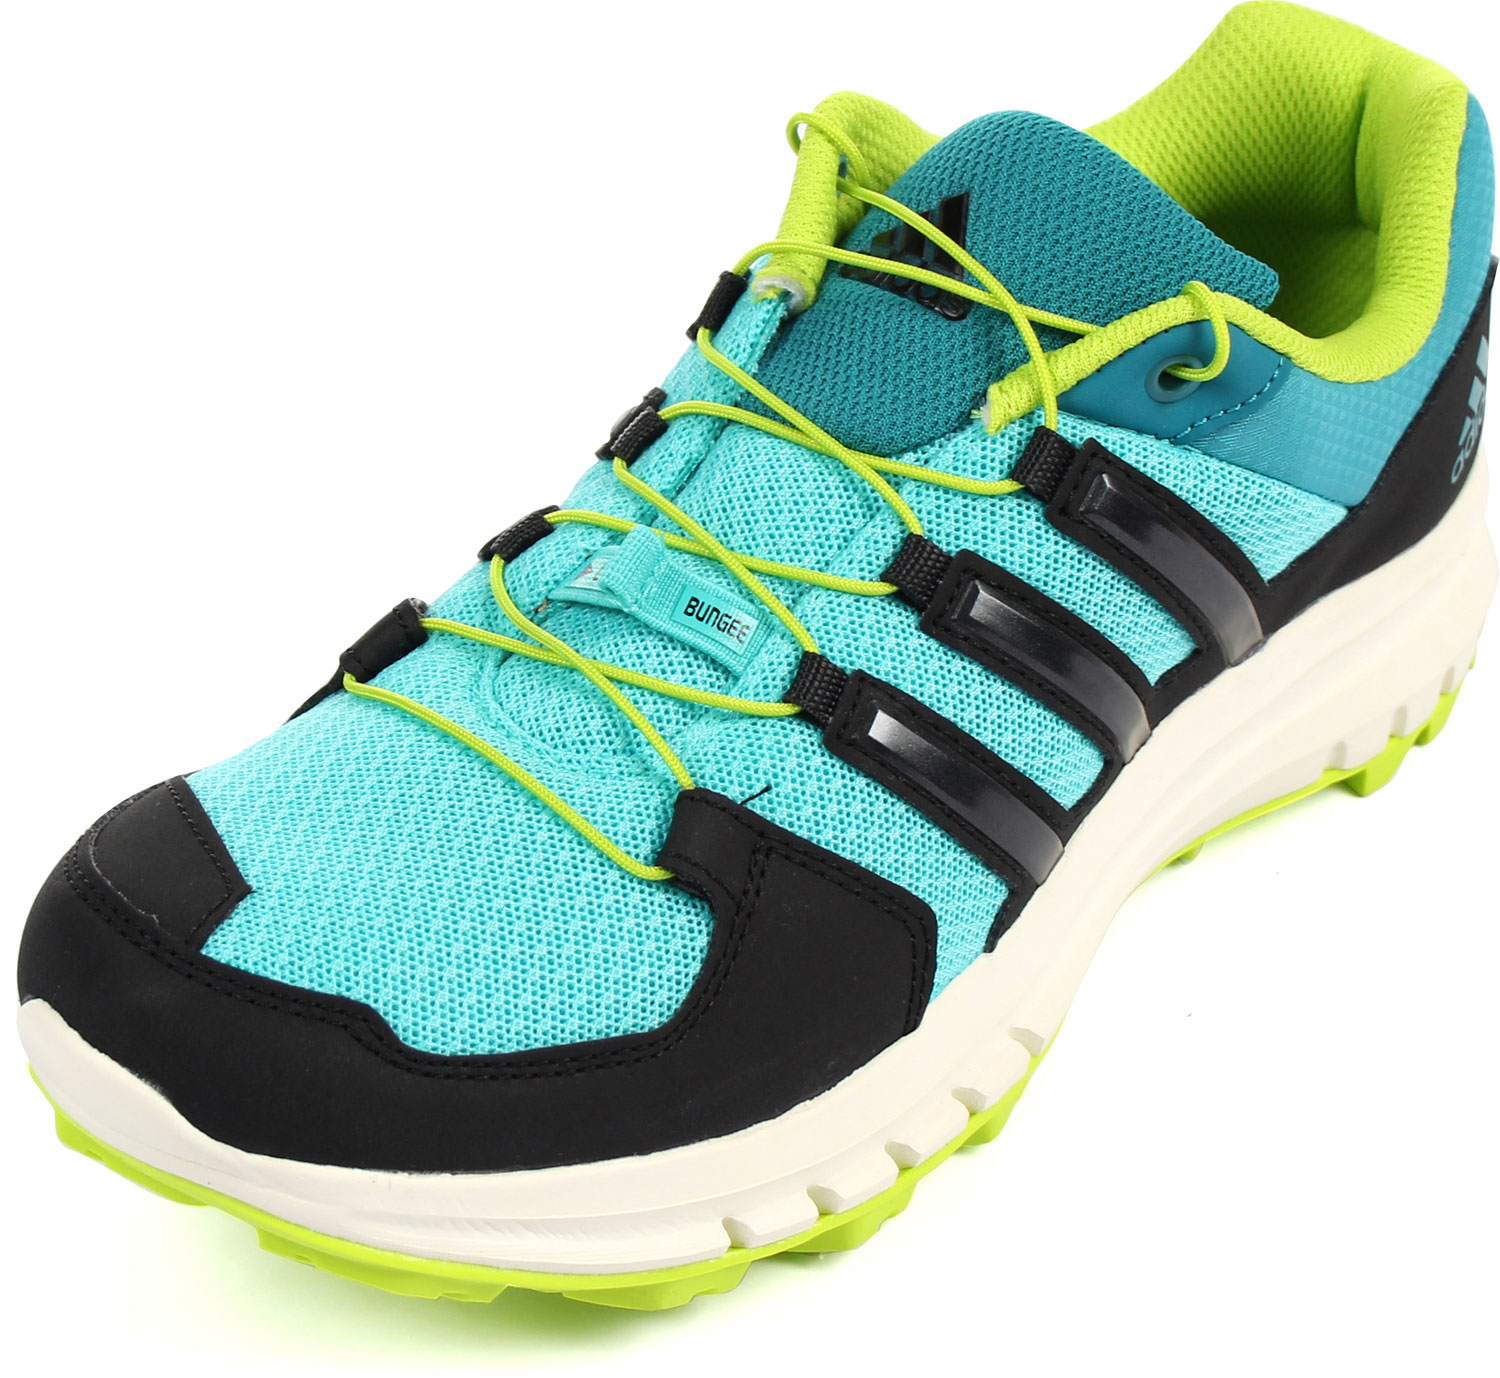 Image of Adidas - Womens Duramo Cross Hiking Shoes